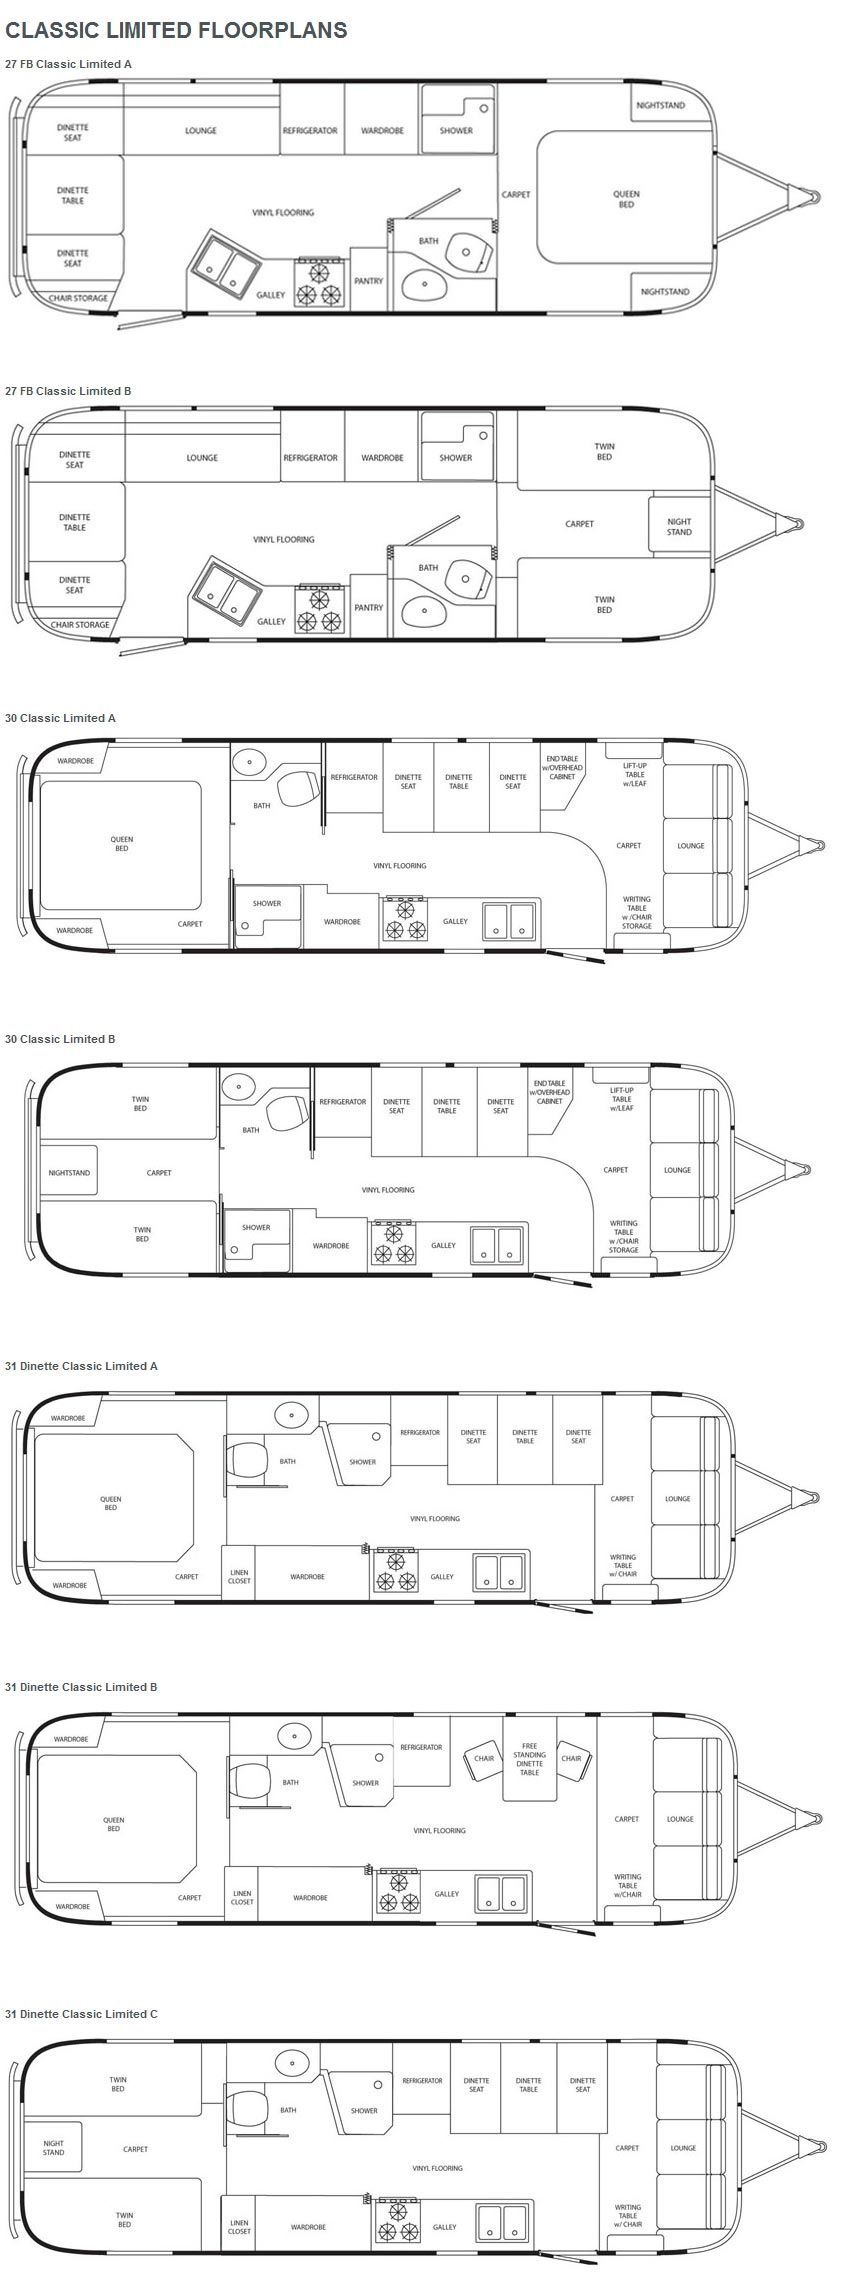 2011 Airstream Classic Limited travel trailer | Roaming Times